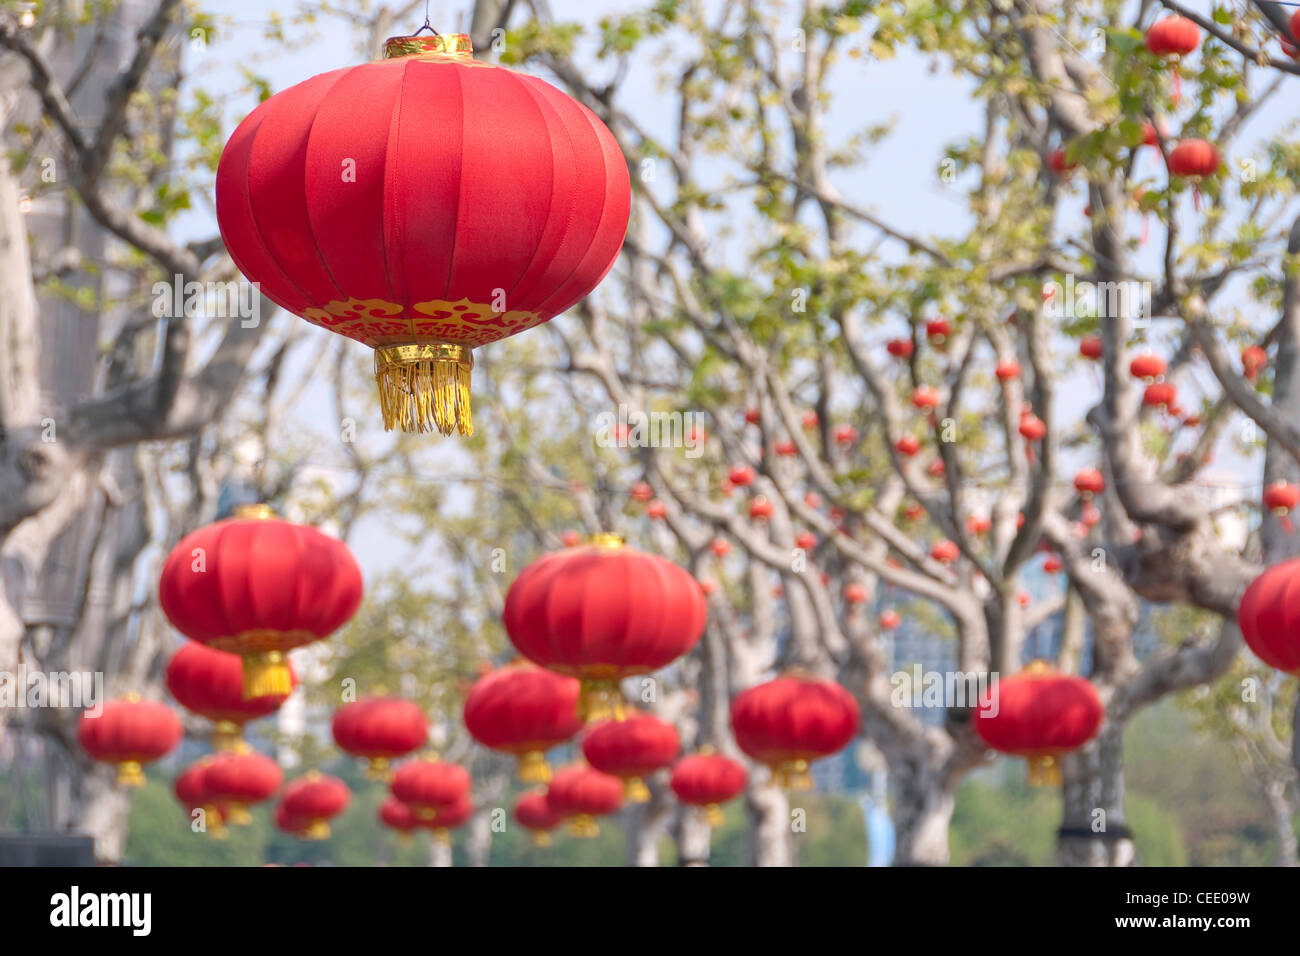 national day china stockfotos national day china bilder alamy. Black Bedroom Furniture Sets. Home Design Ideas